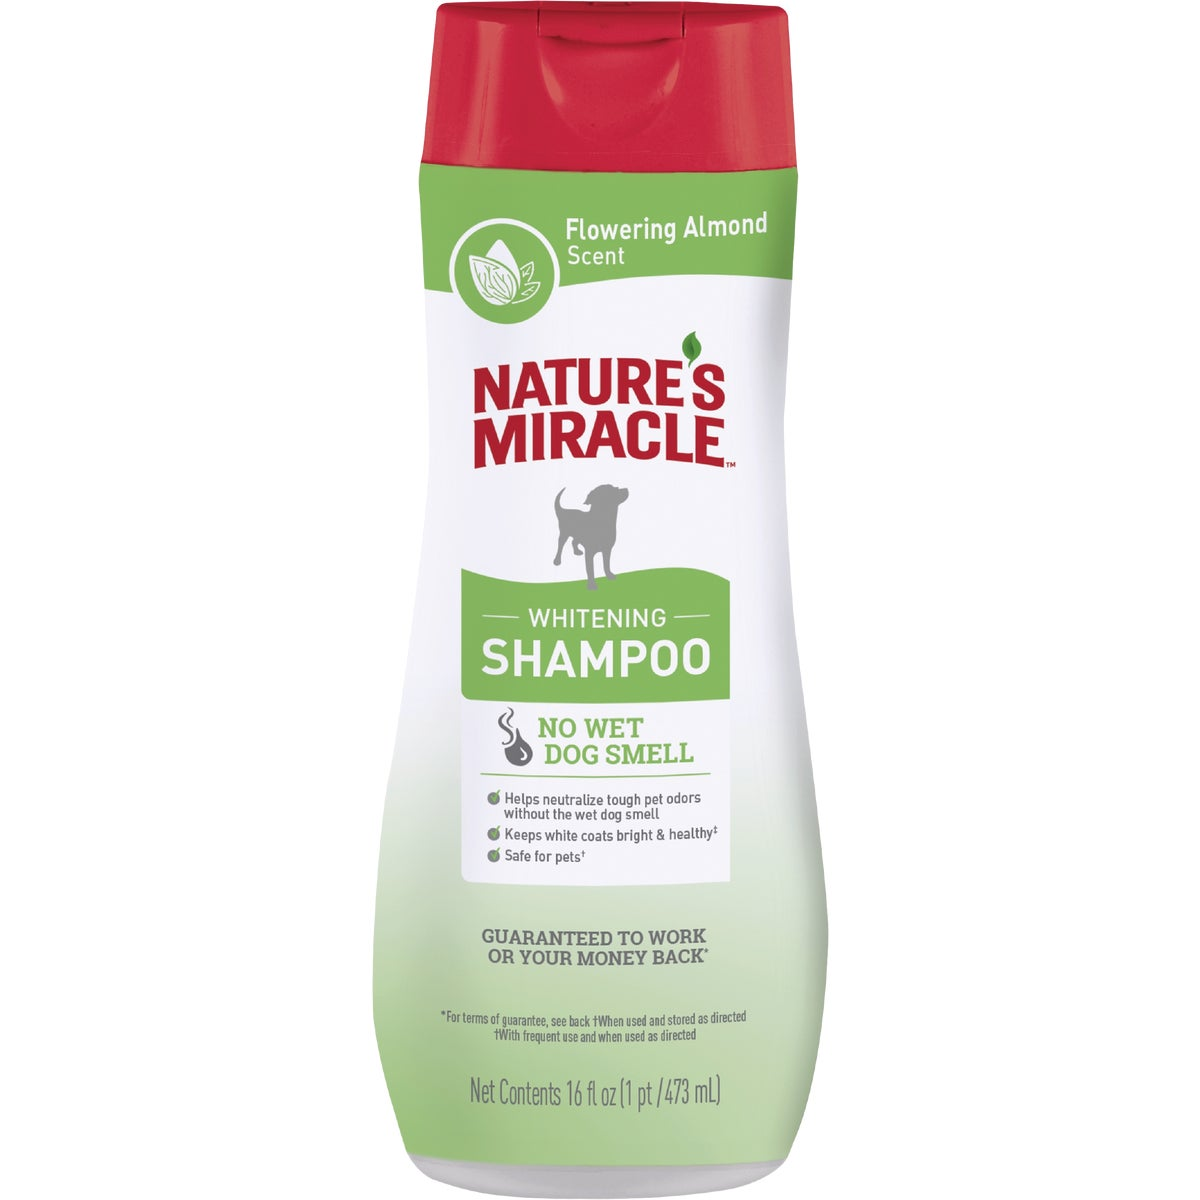 20OZ PREM OATDOG SHAMPOO - P-82723 by United Pet Group